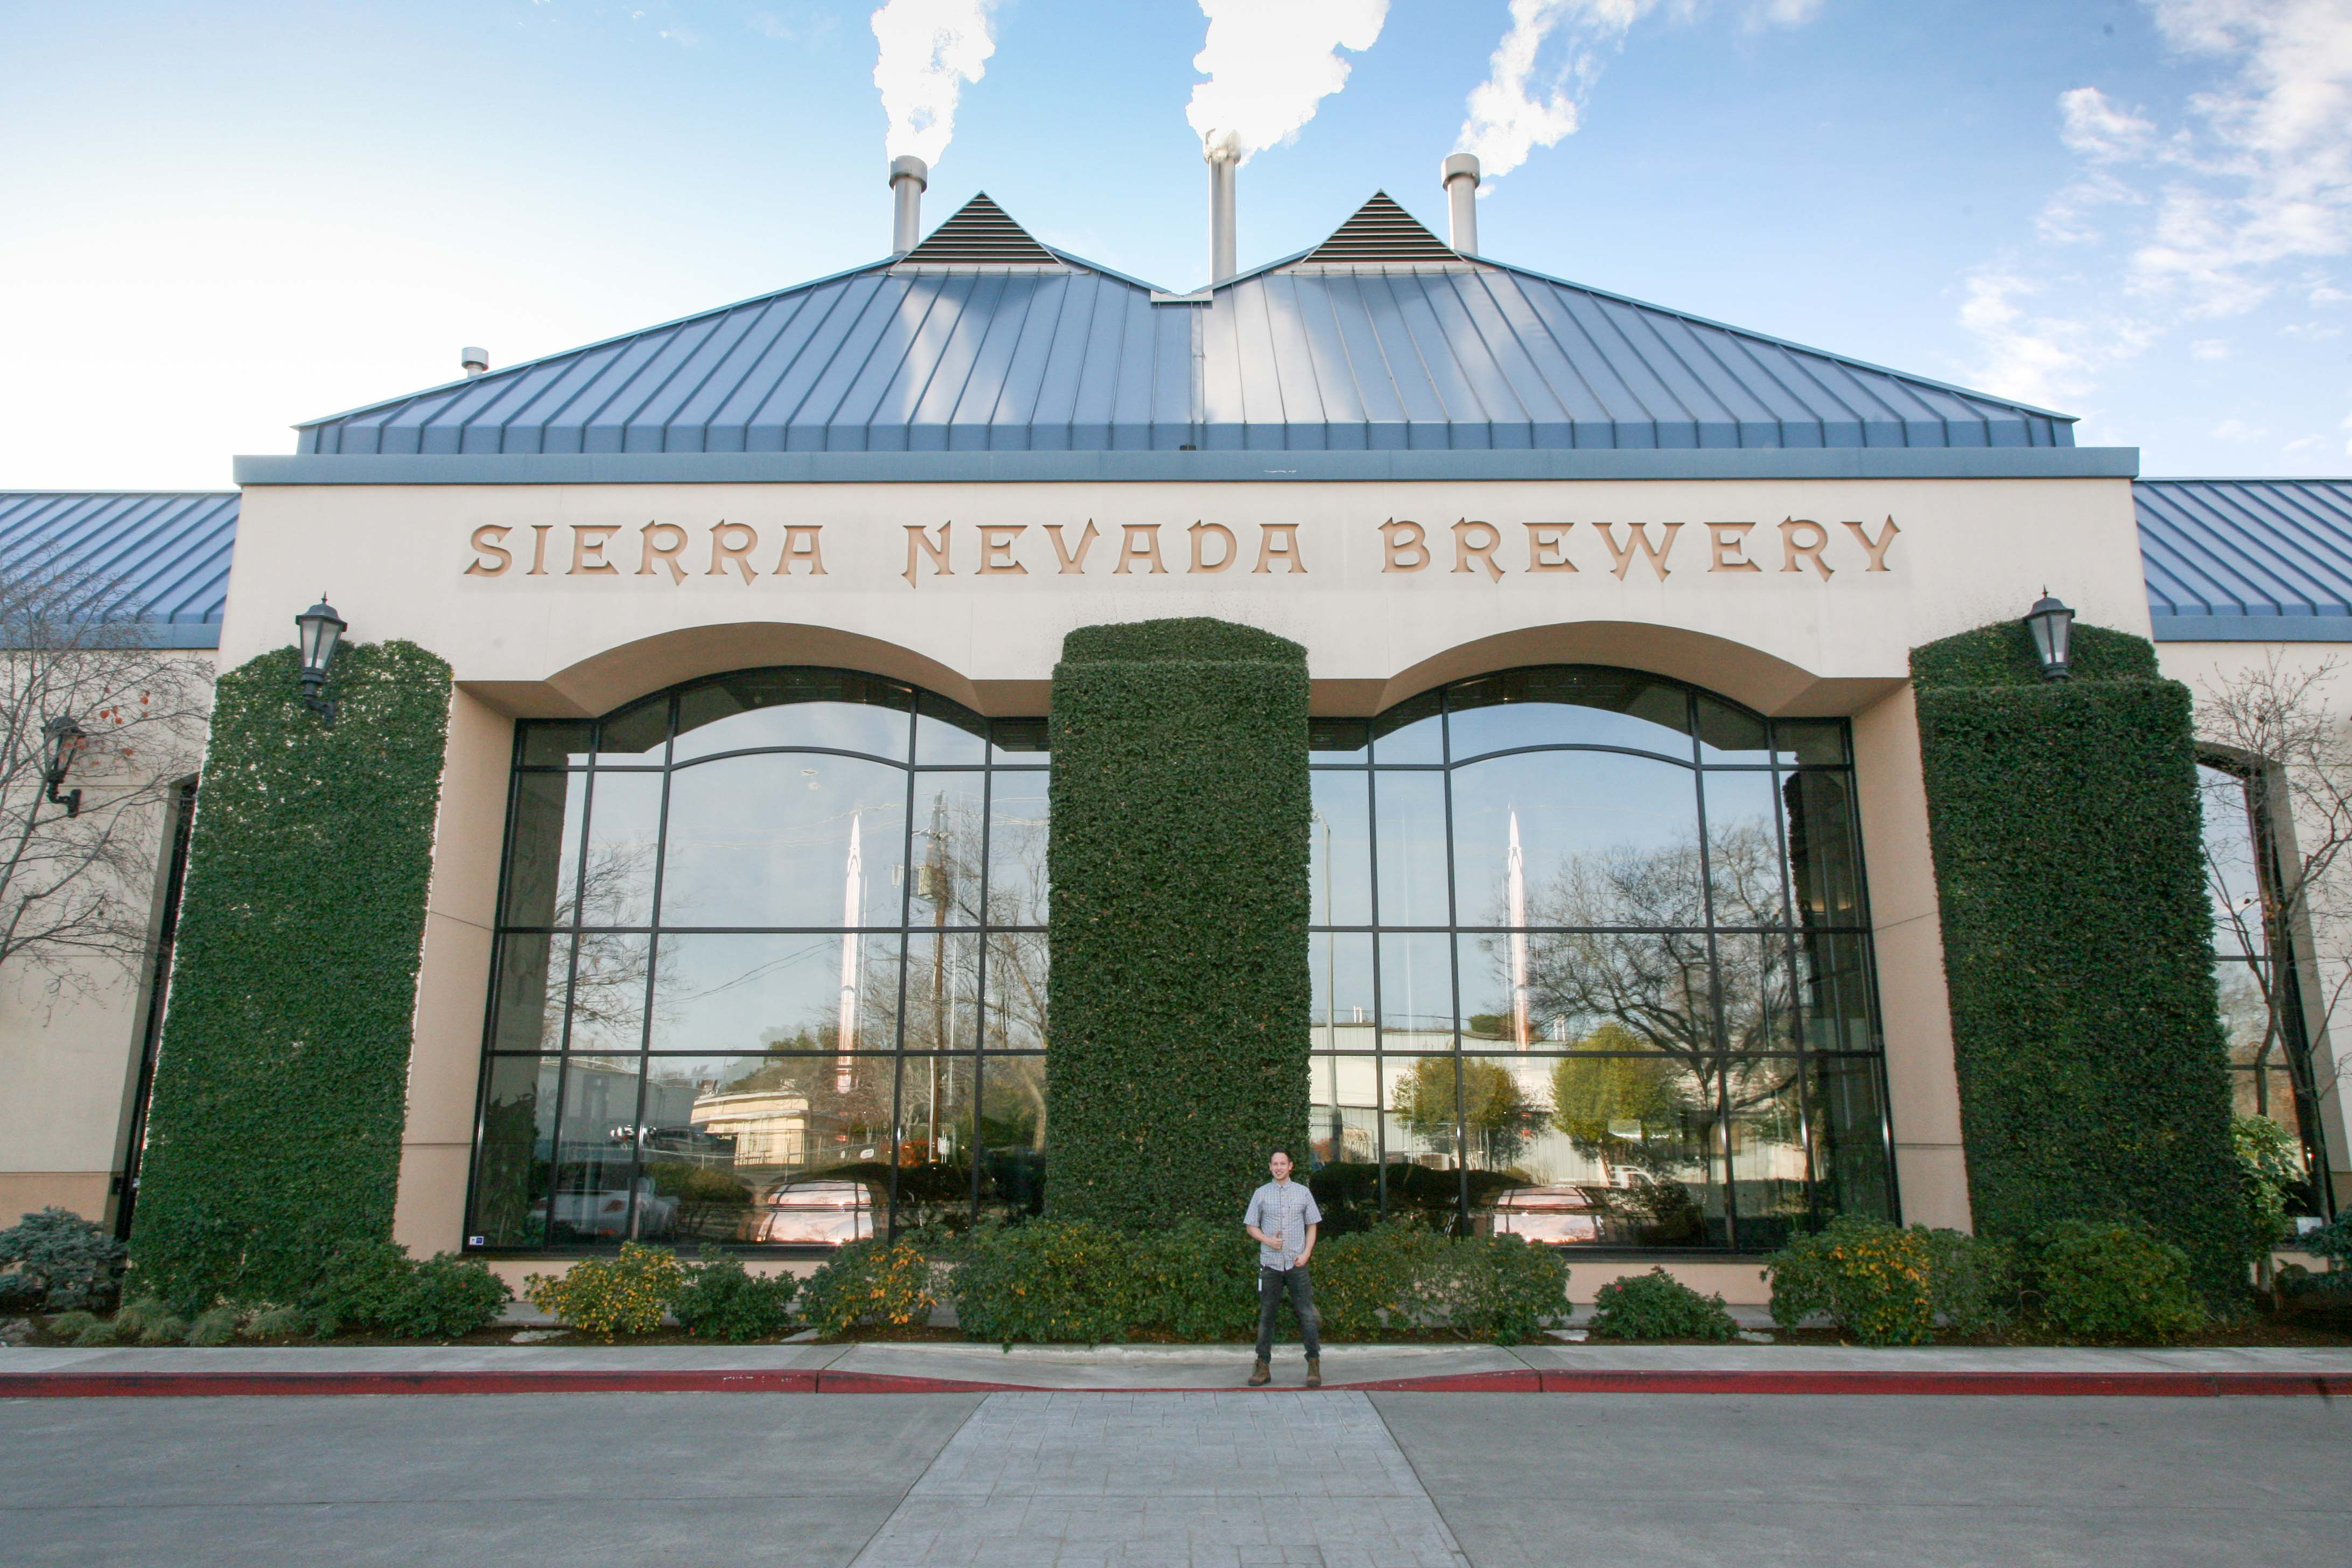 Young man standing in front of the Sierra Nevada Brewery